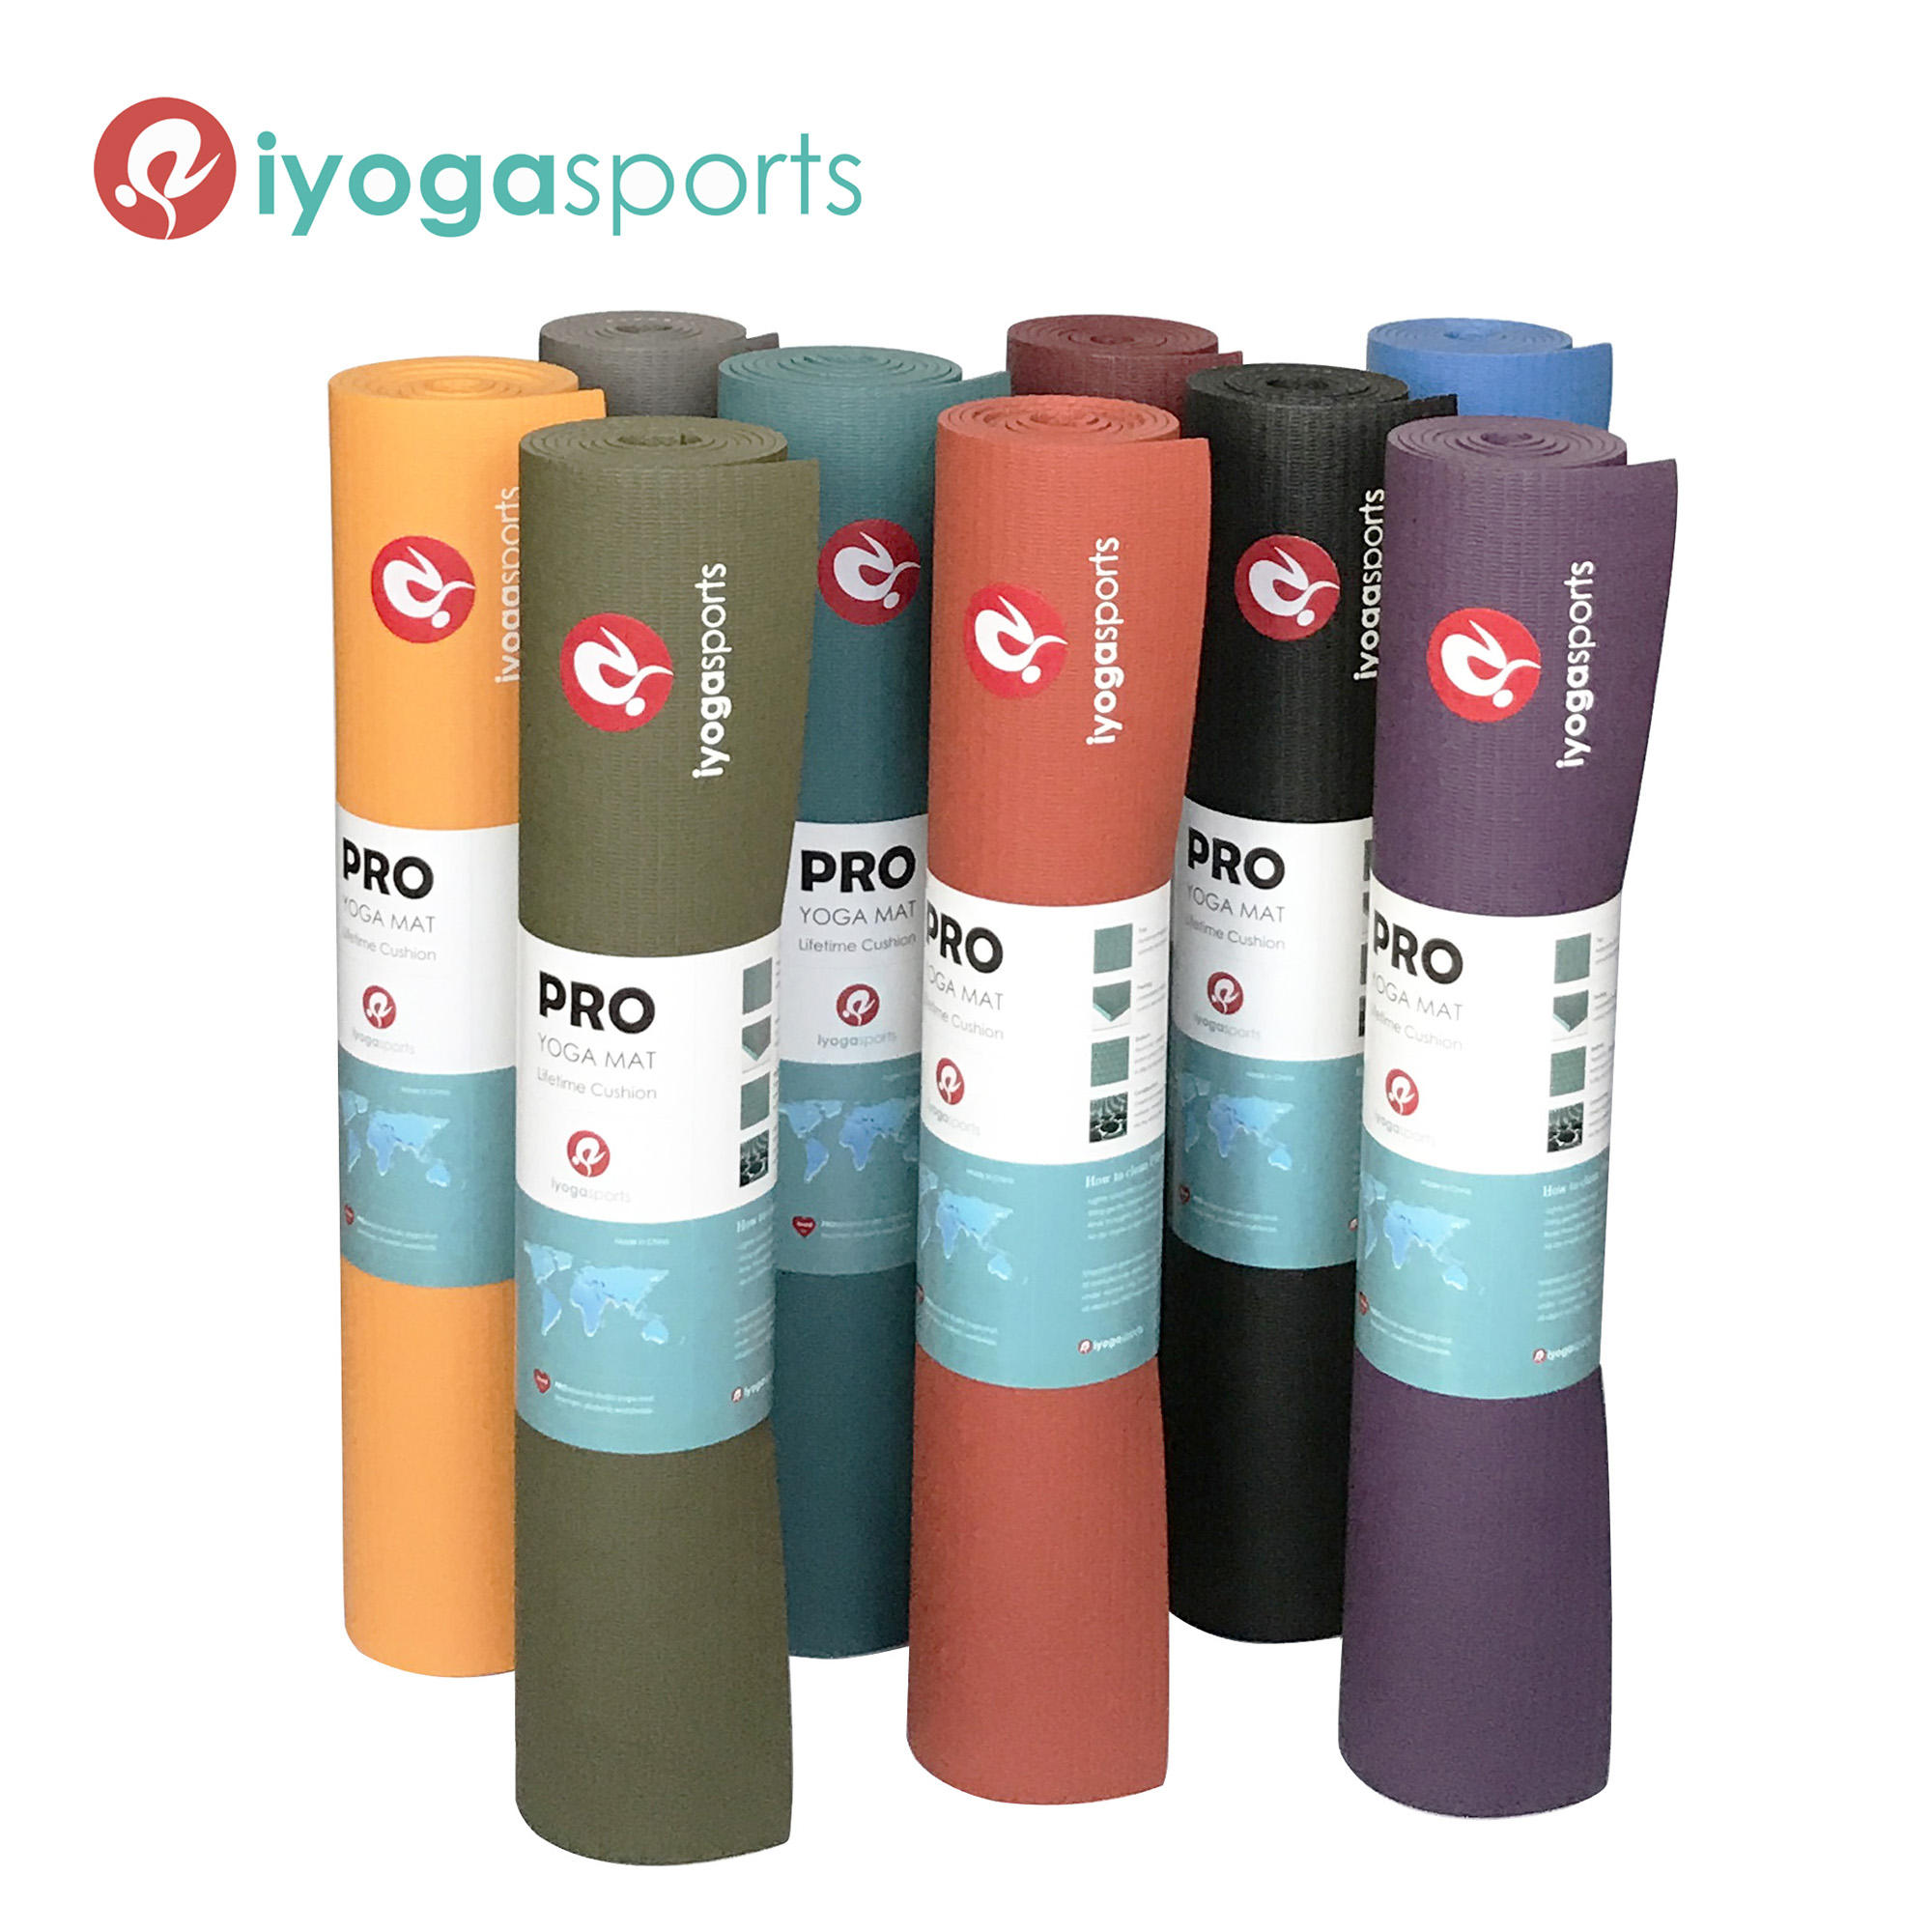 5mm thick manduka PRO light yoga mat high density studio mat firm and eco friendly closed cell mat PRO style